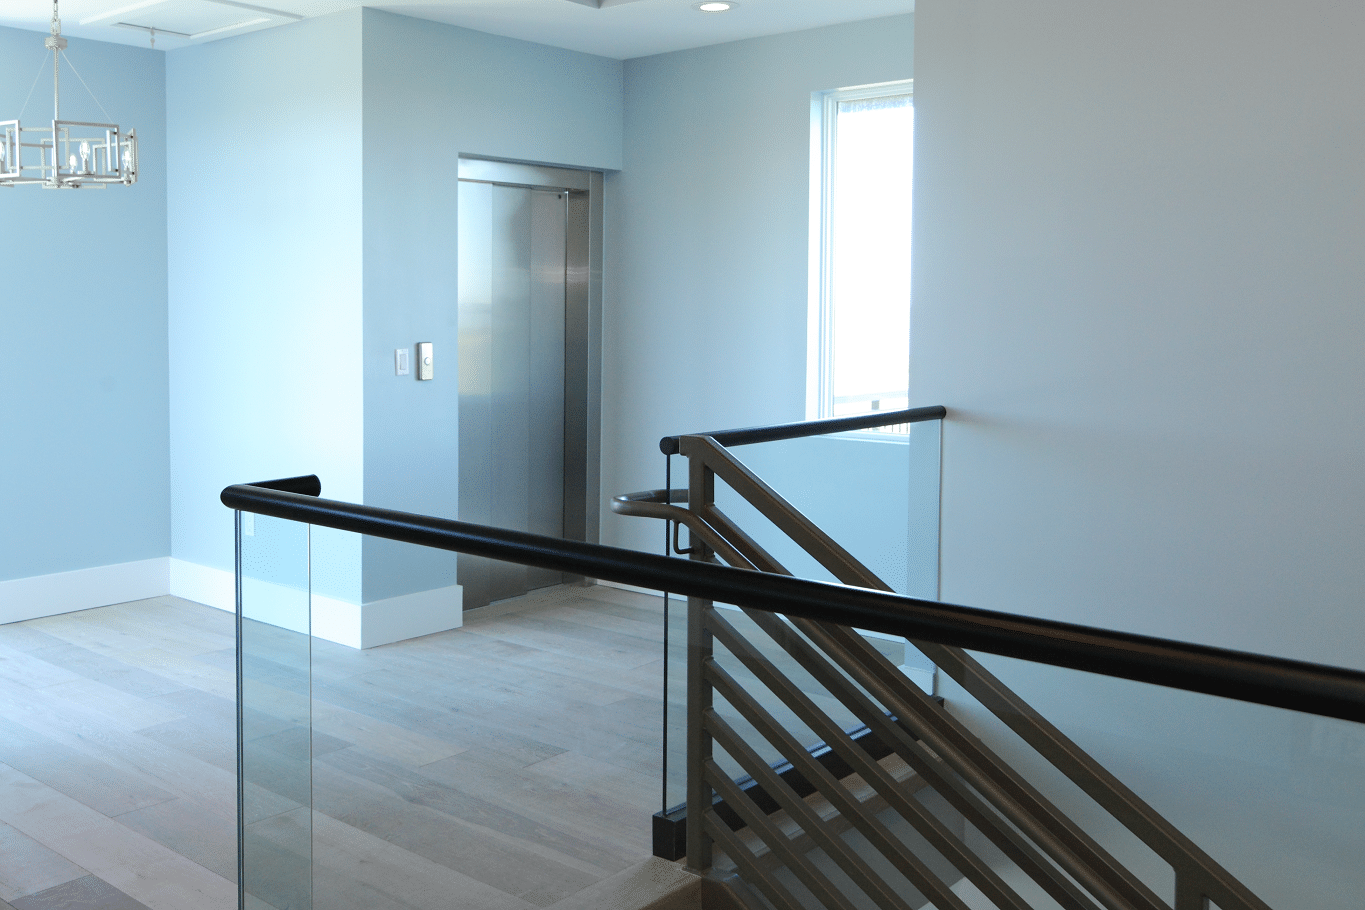 Automatic 3 Speed Doors For Your Home Elevator